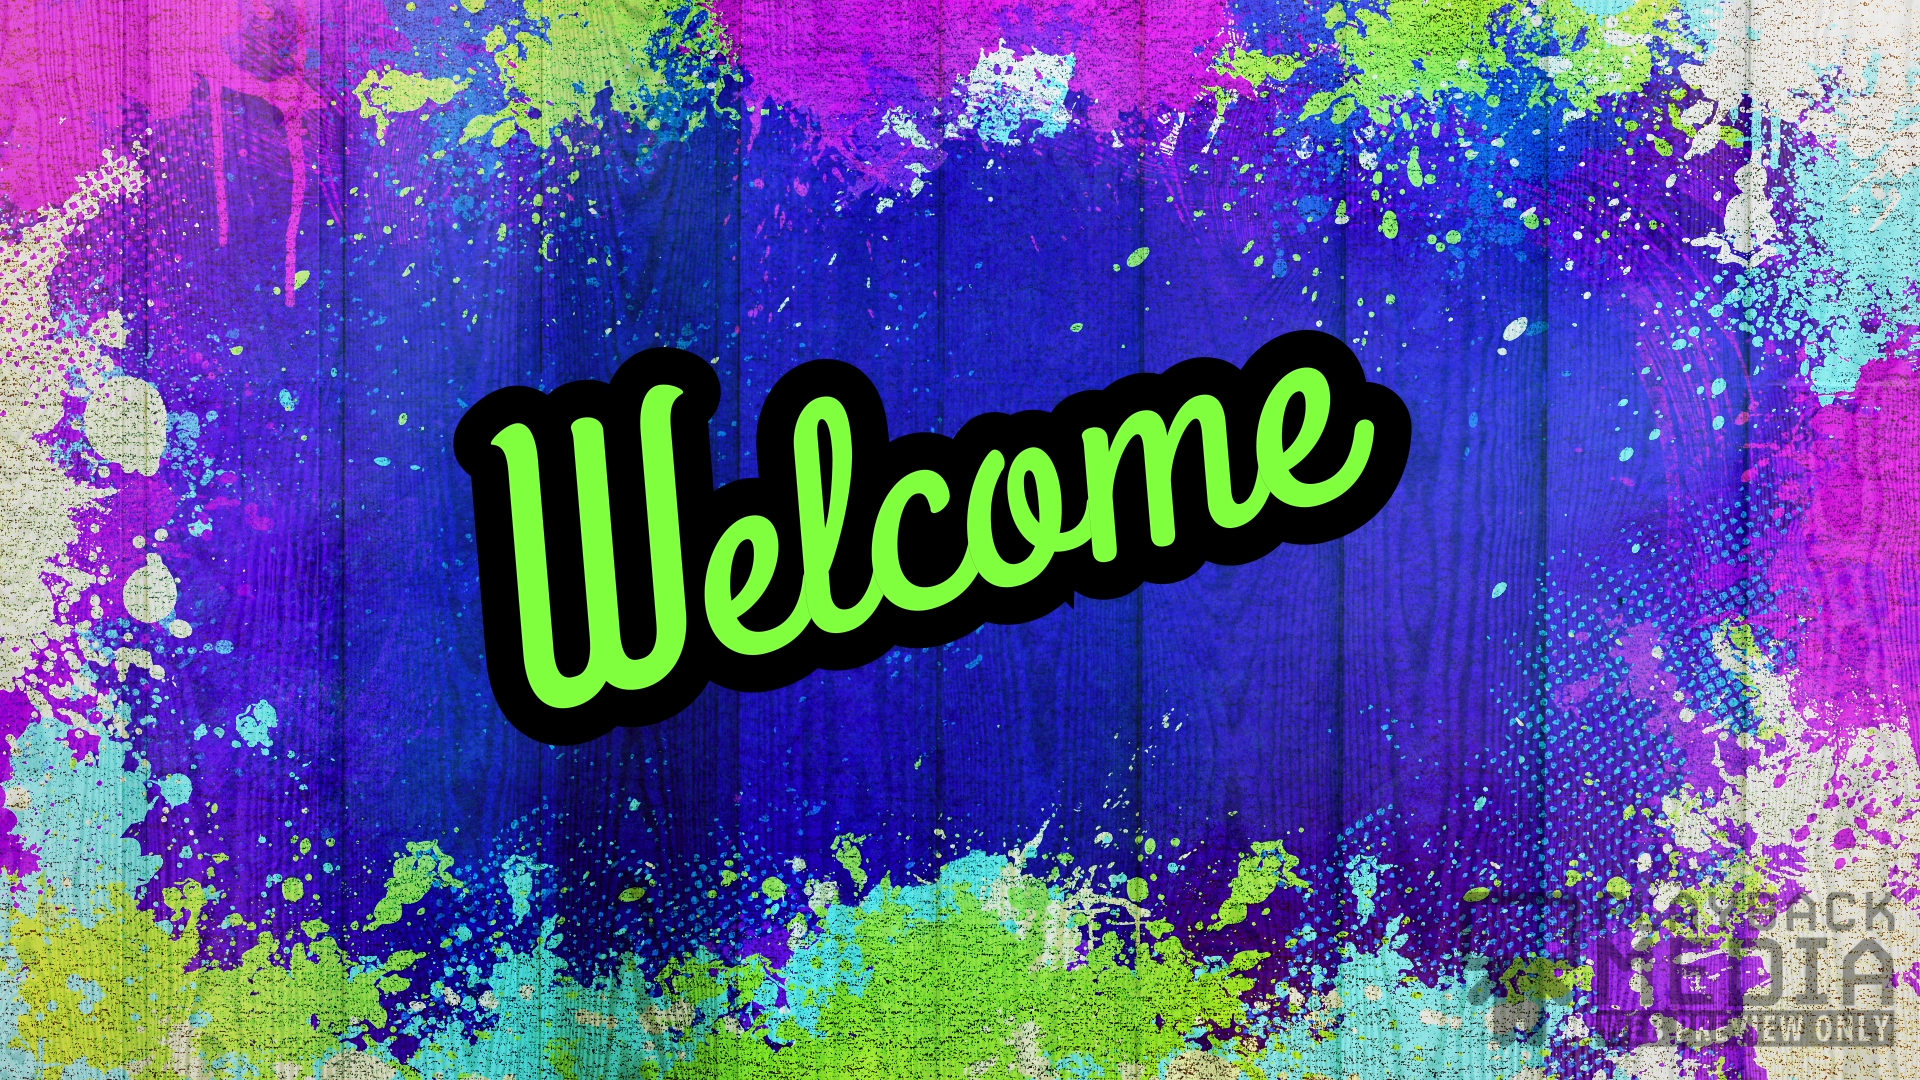 Painted Joy Welcome Still Image